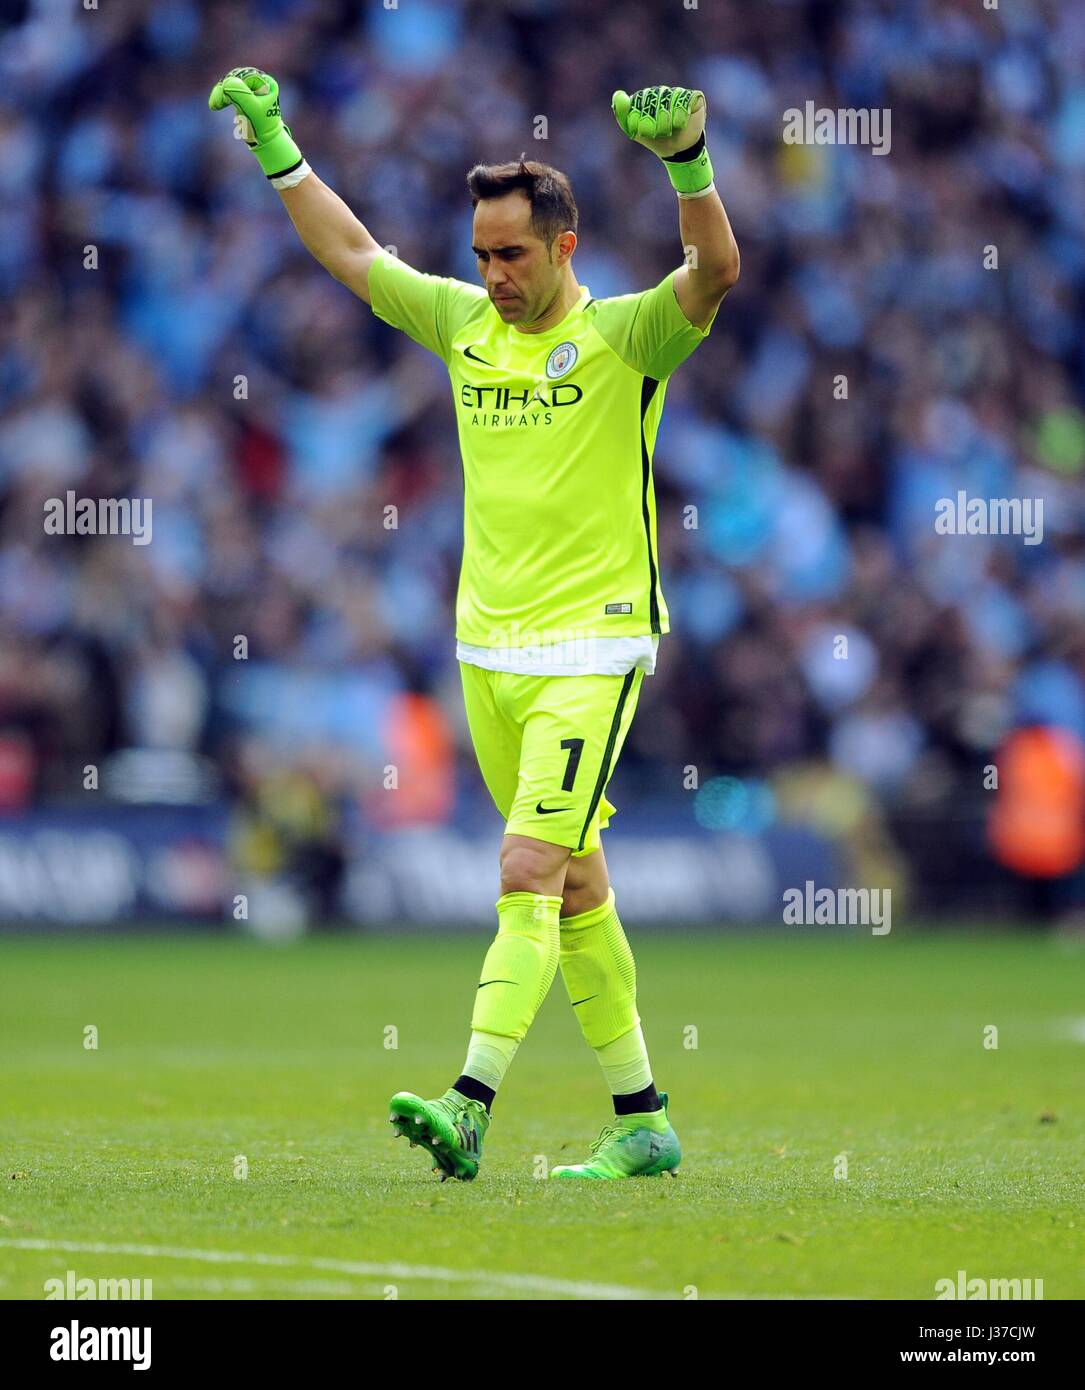 CLAUDIO BRAVO OF MANCHESTER CI ARSENAL V MANCHESTER CITY WEMBLEY